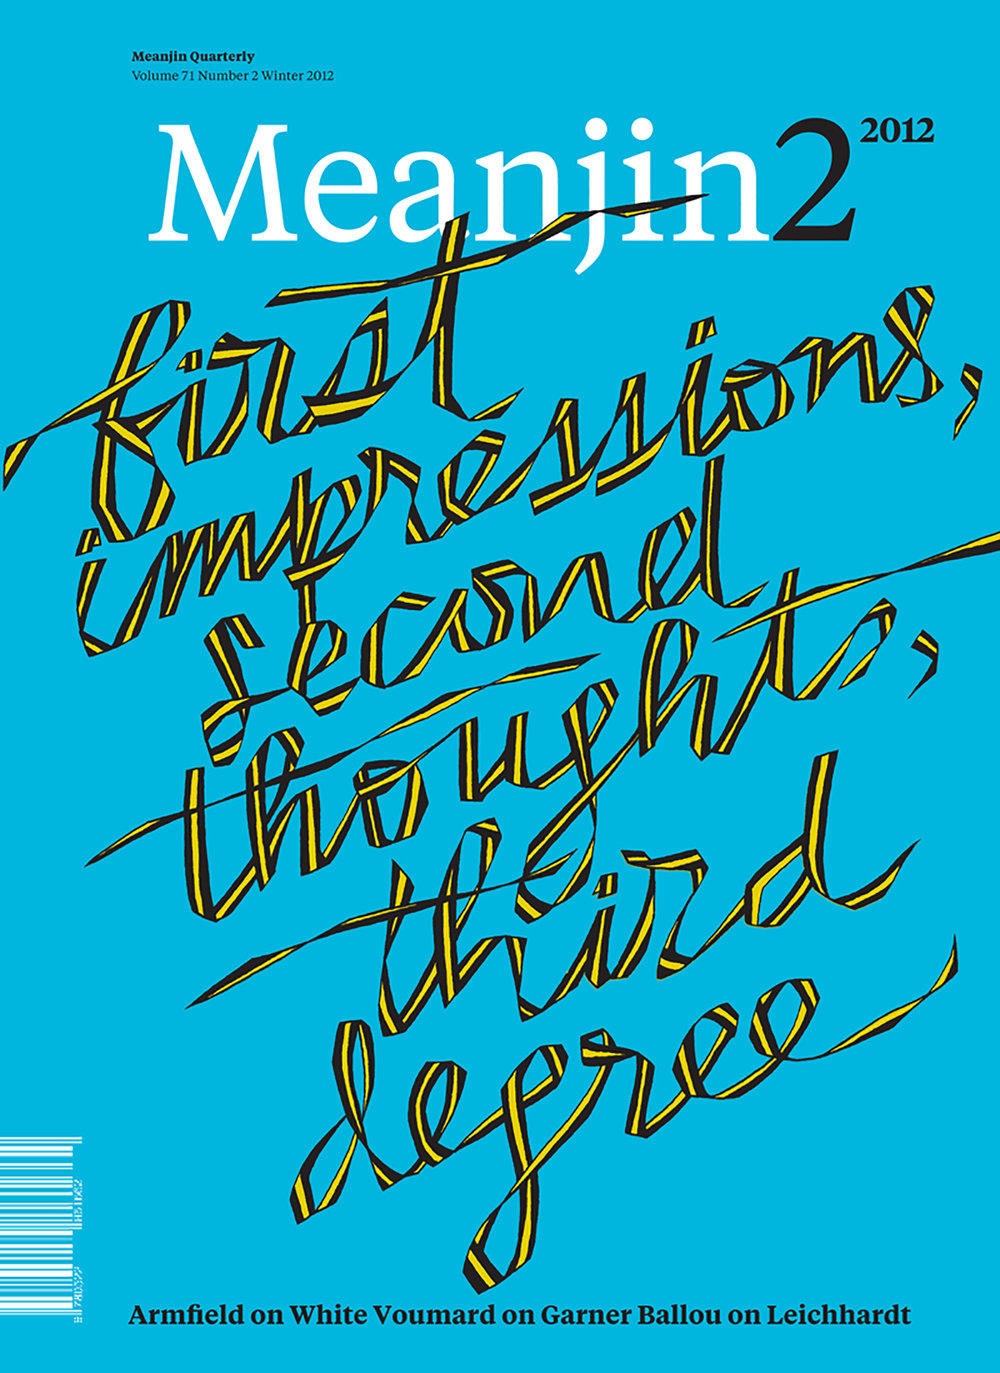 Meanjin1-2012_Cover-3-sized.jpg